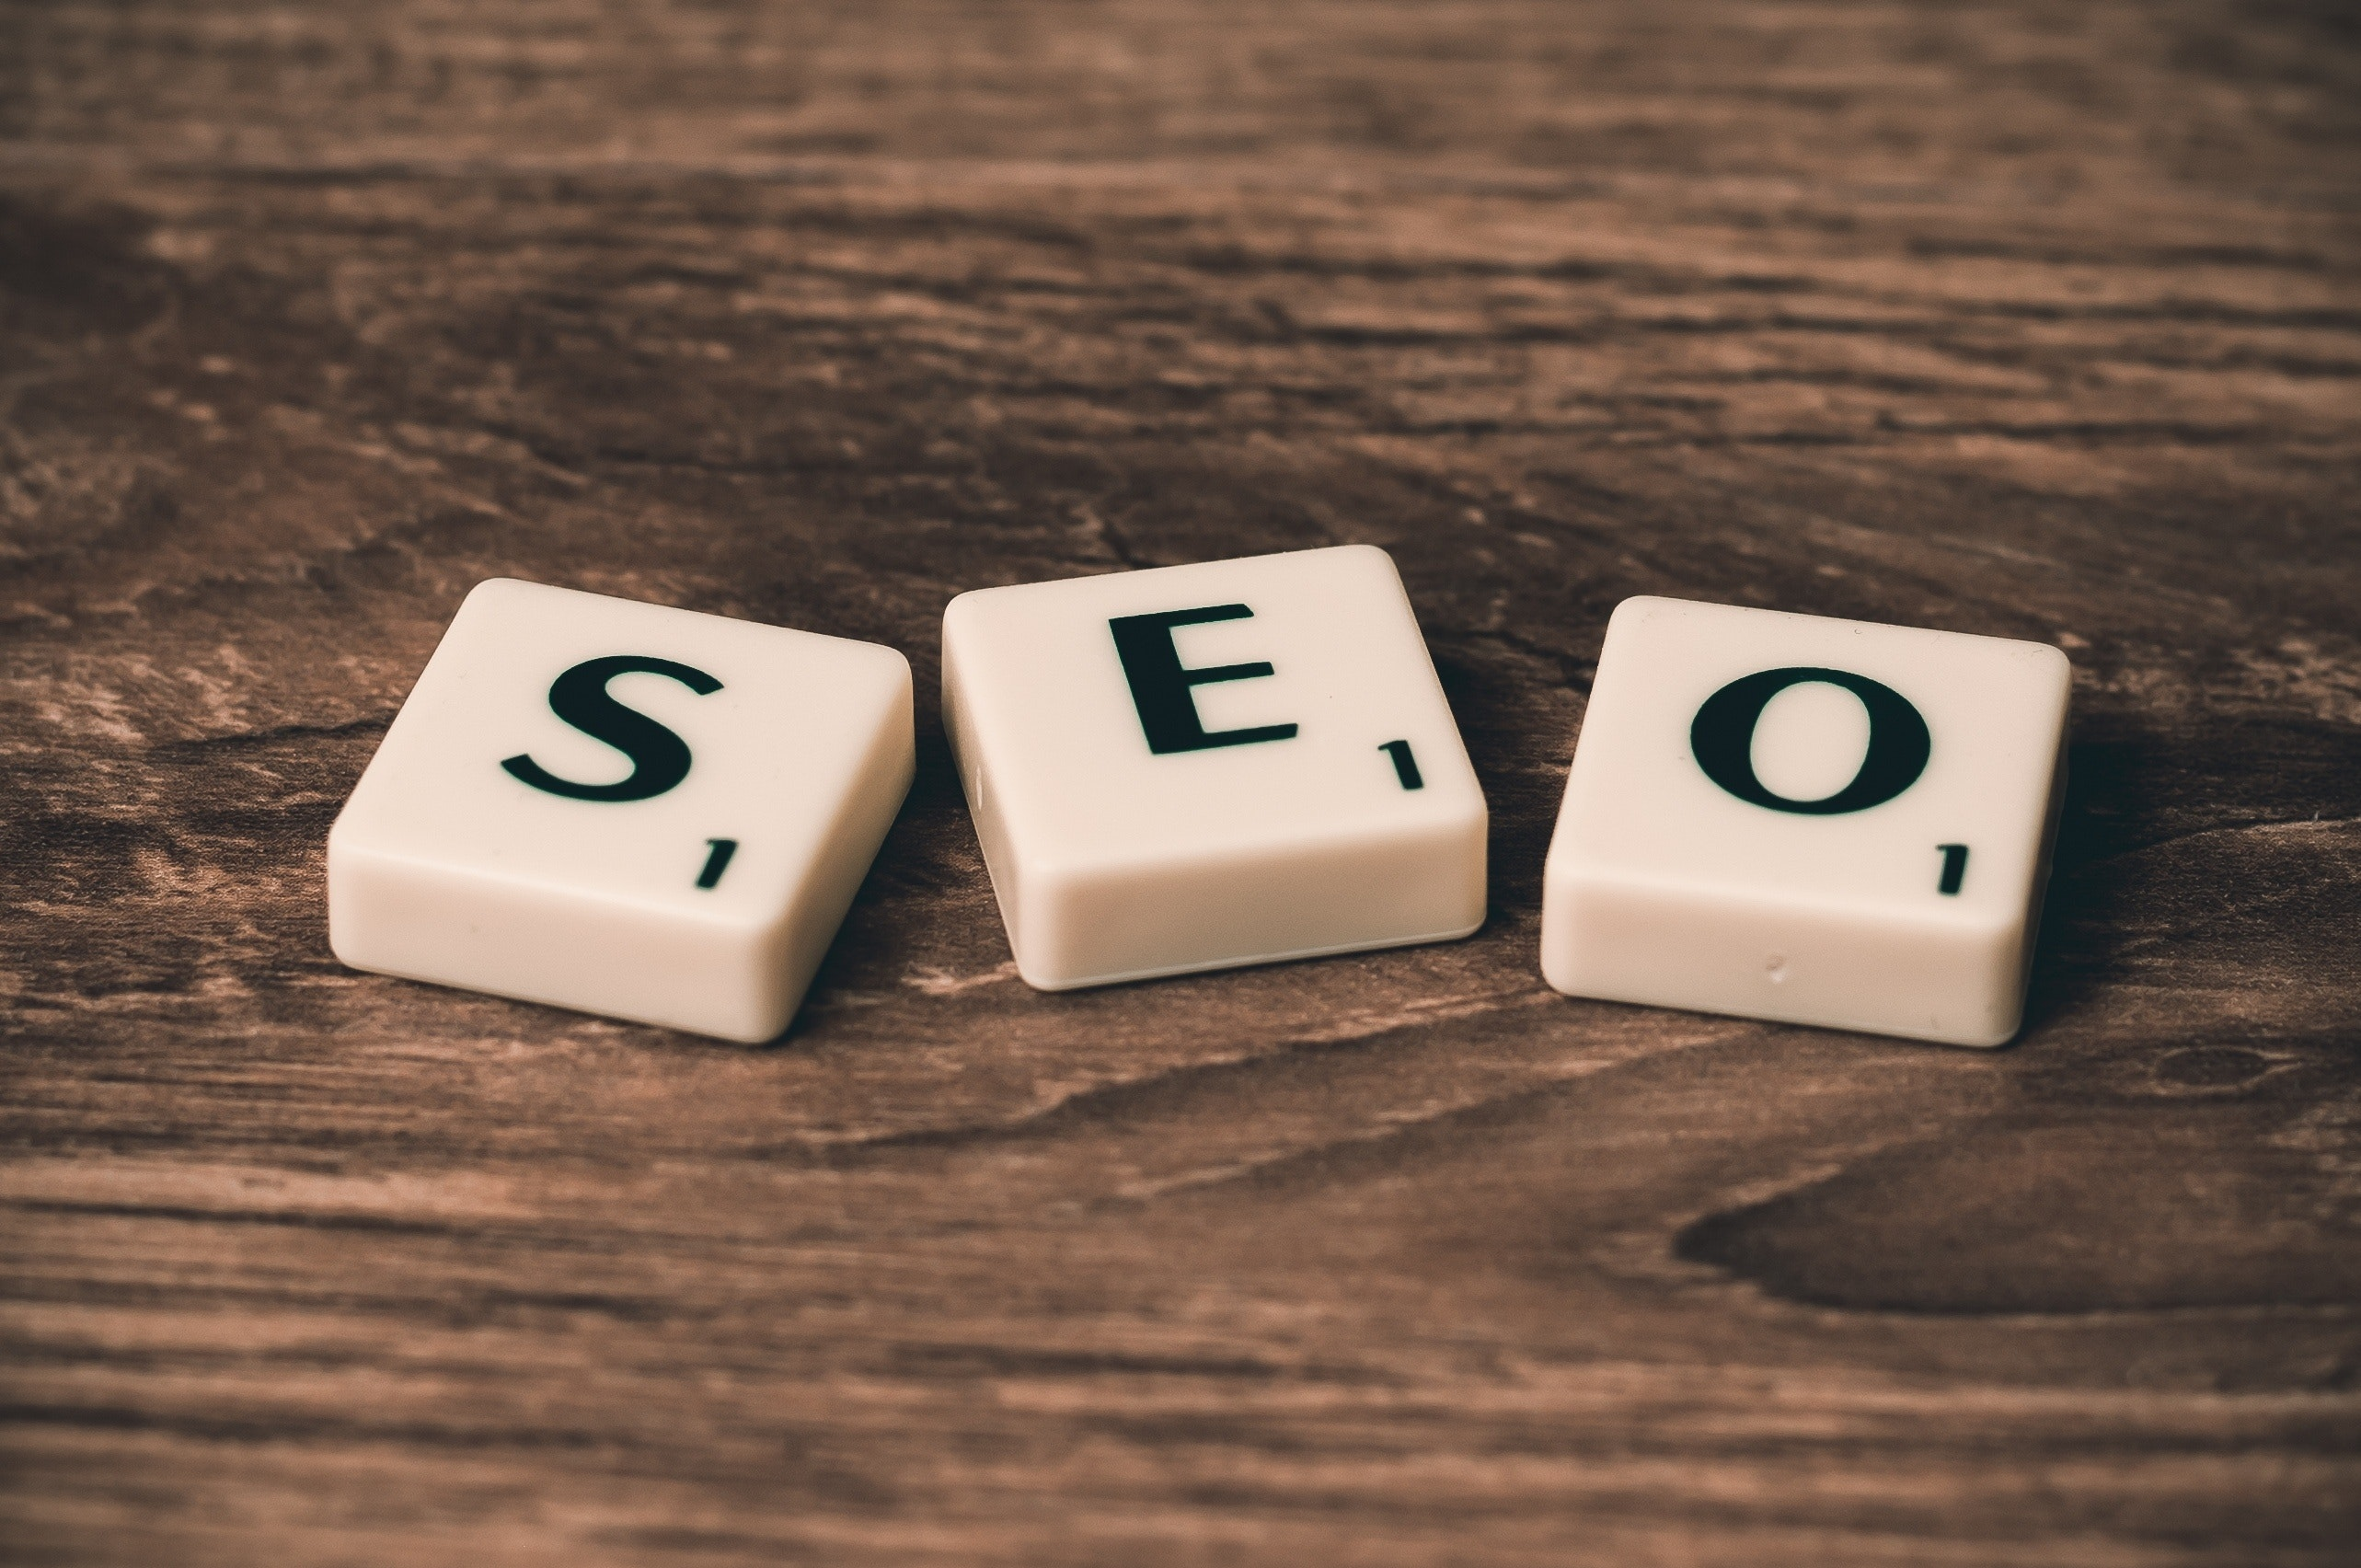 Great seo 110 tips for traffic generation on your website